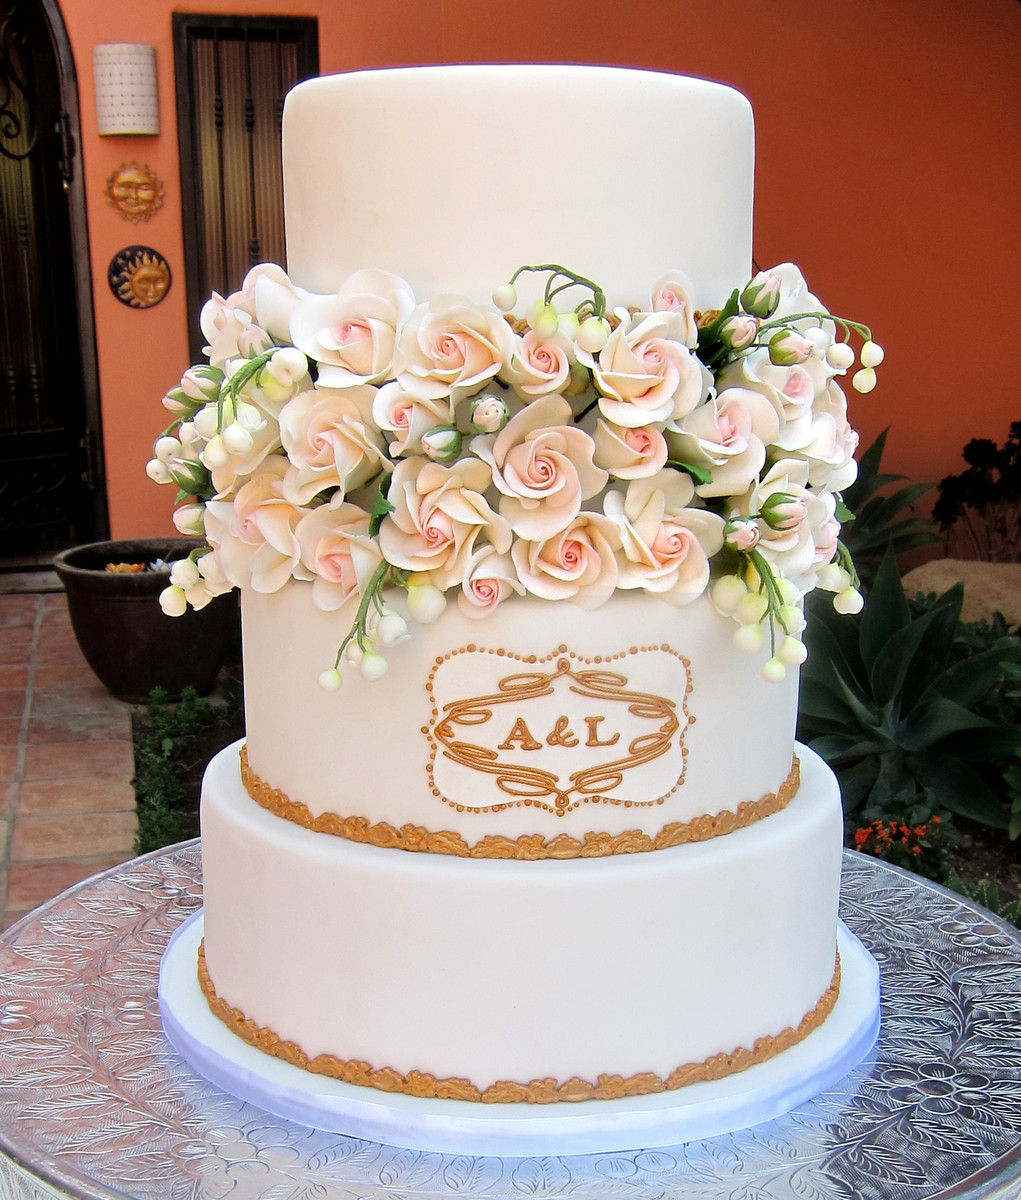 Delicious Wedding Cakes  Delicious Arts Wedding Cake California Los Angeles